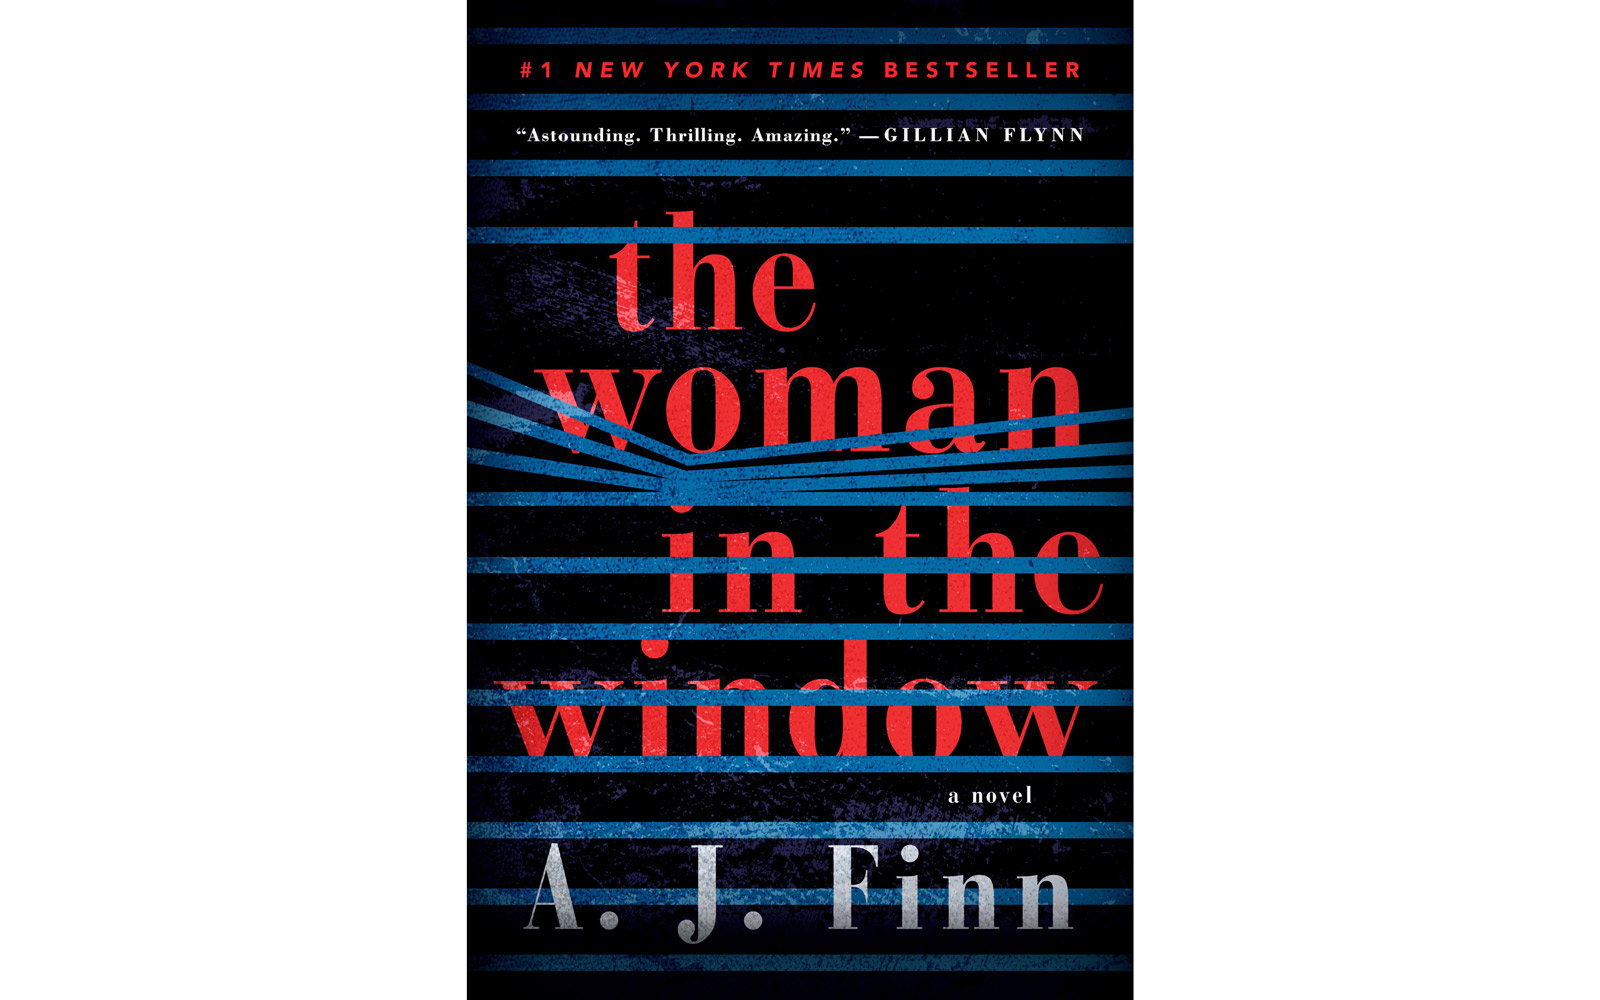 'The Woman in the Window' by A. J. Finn